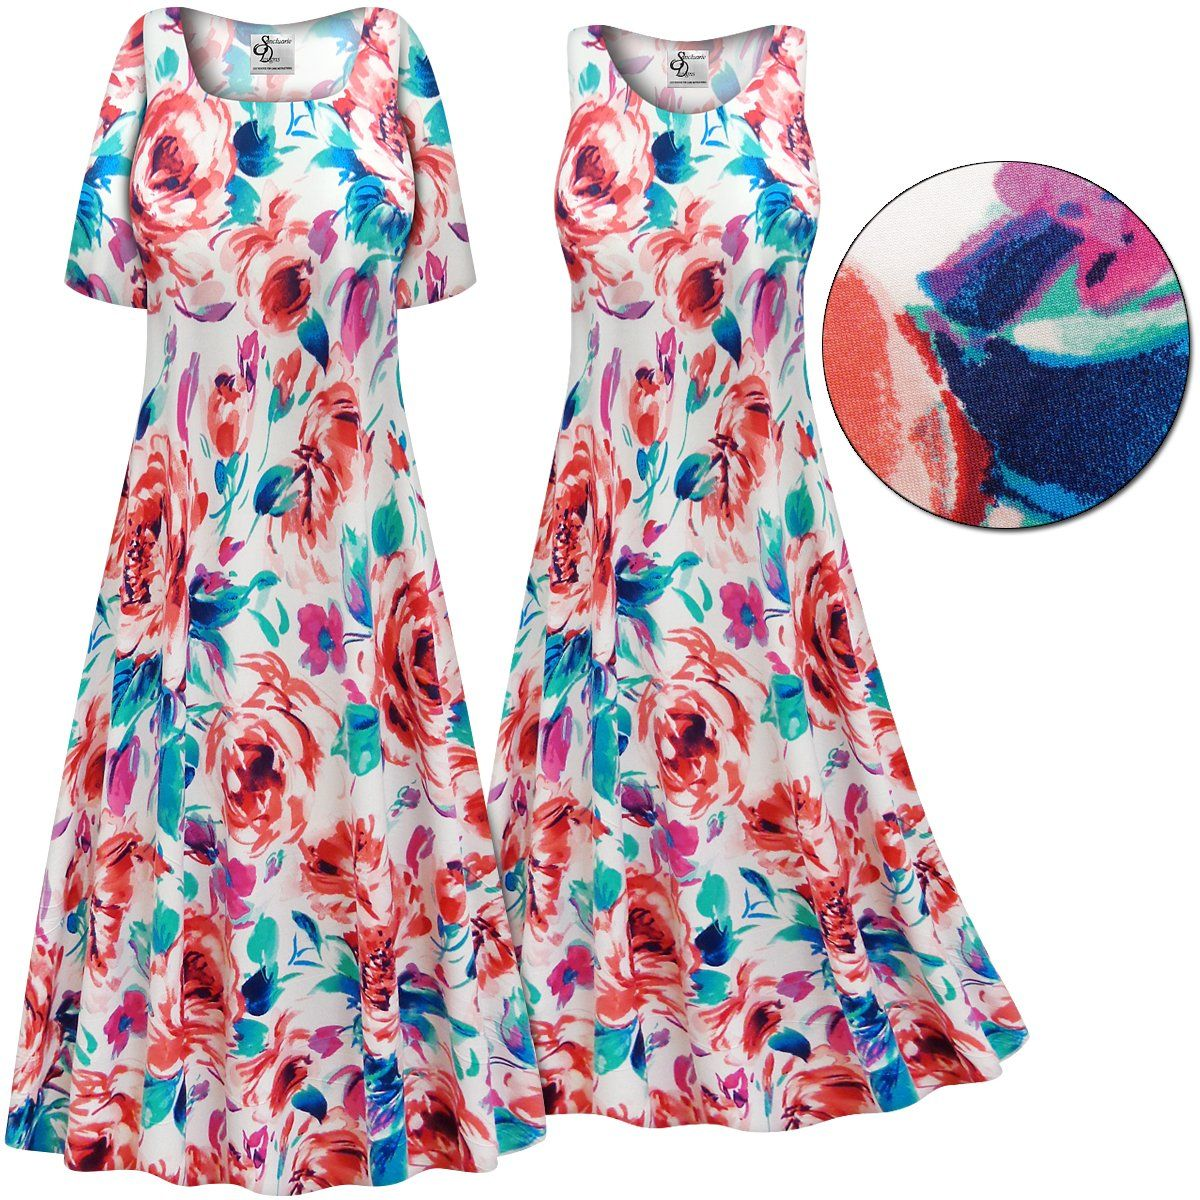 CLEARANCE! Plus Size Floral Slinky Print Short or Long ...